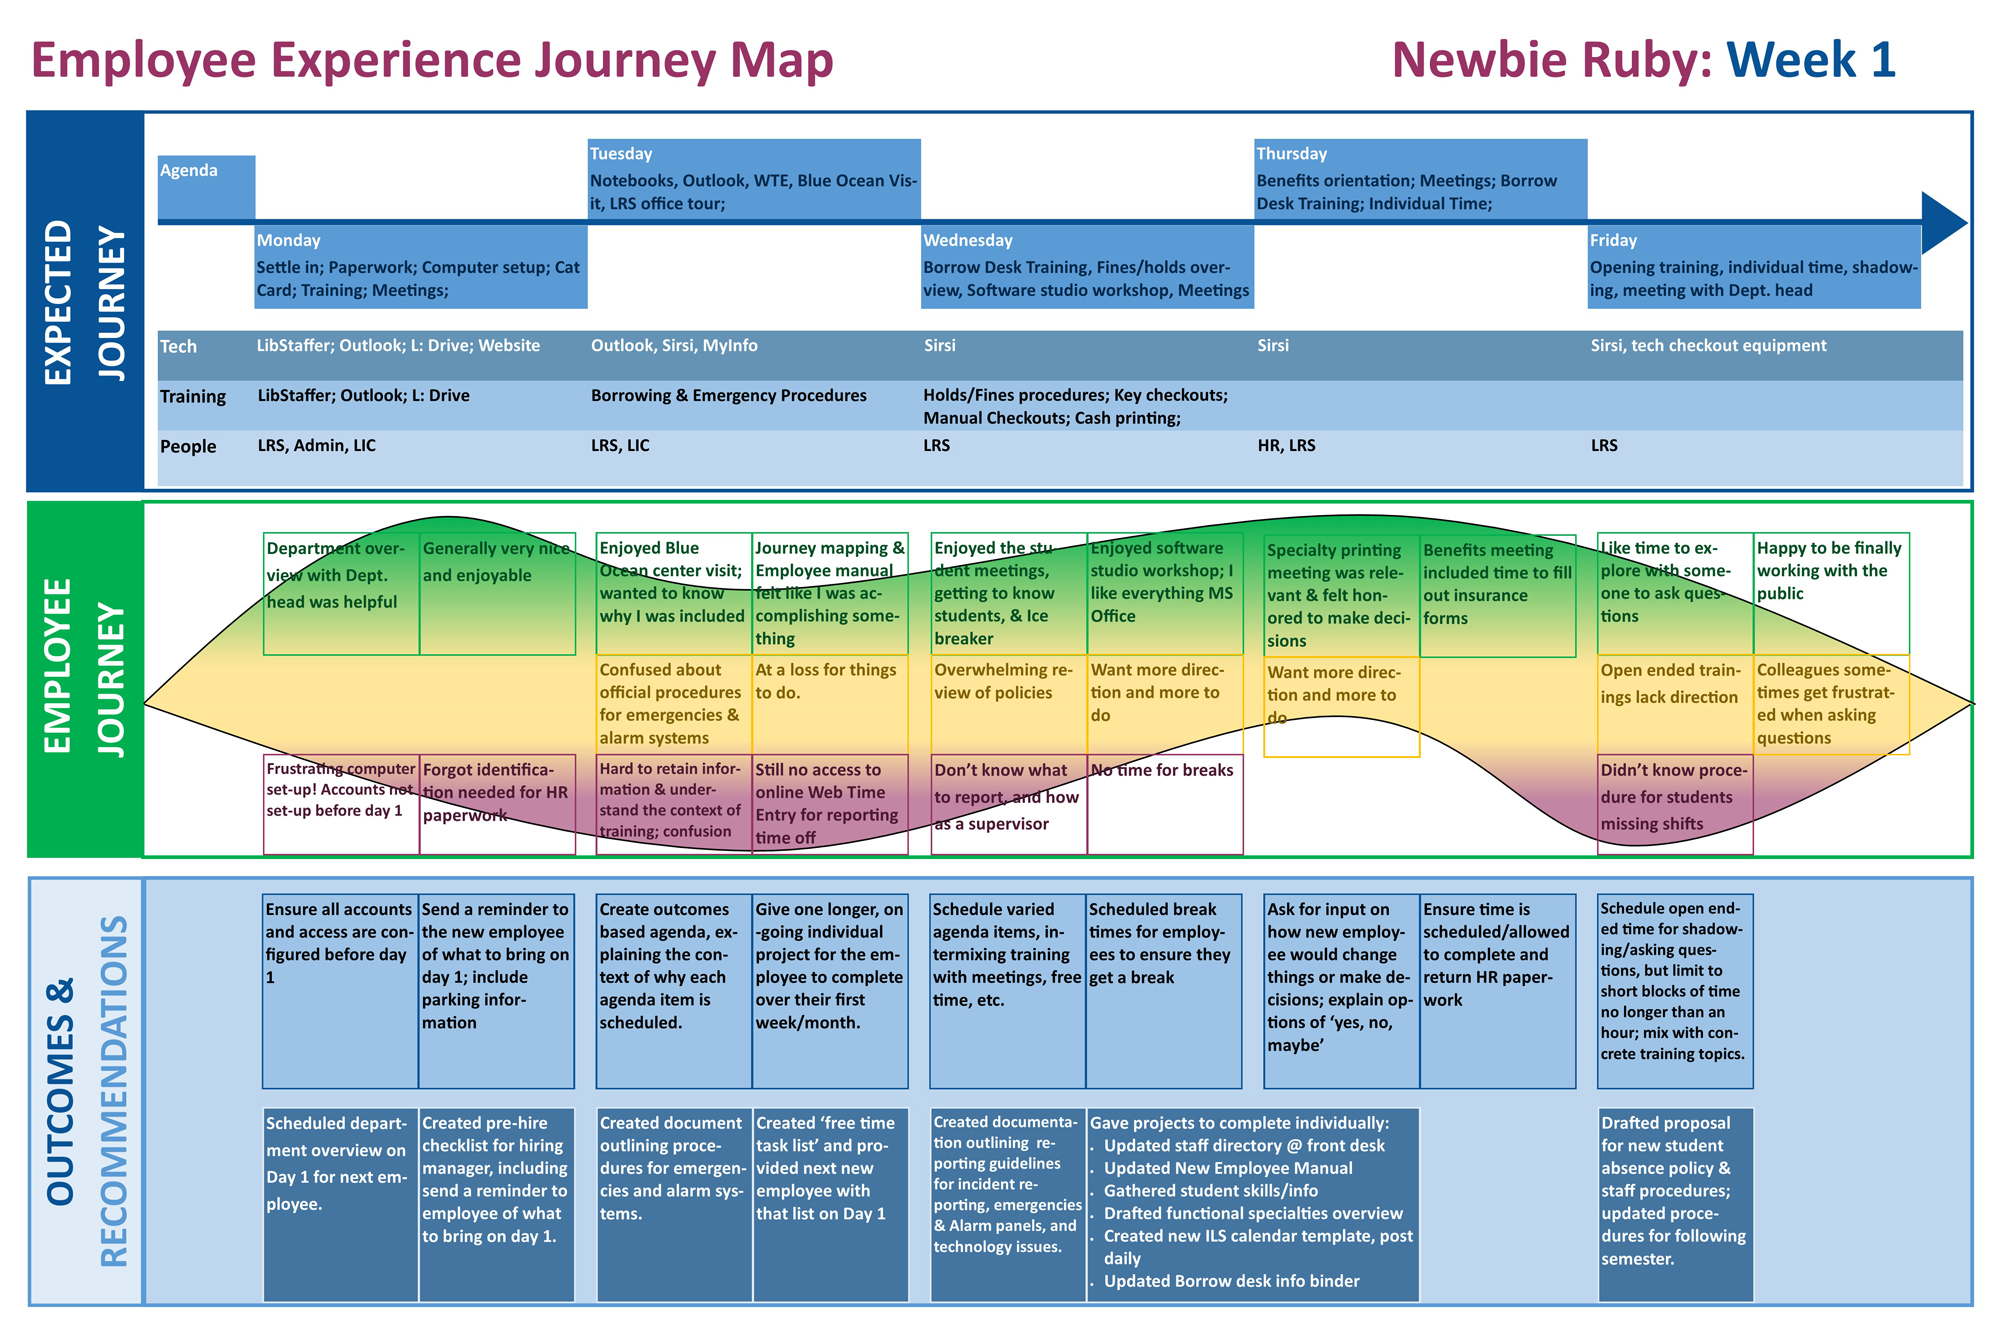 Figure 6. Employee Experience Journey Map for Newbie Ruby's first week.